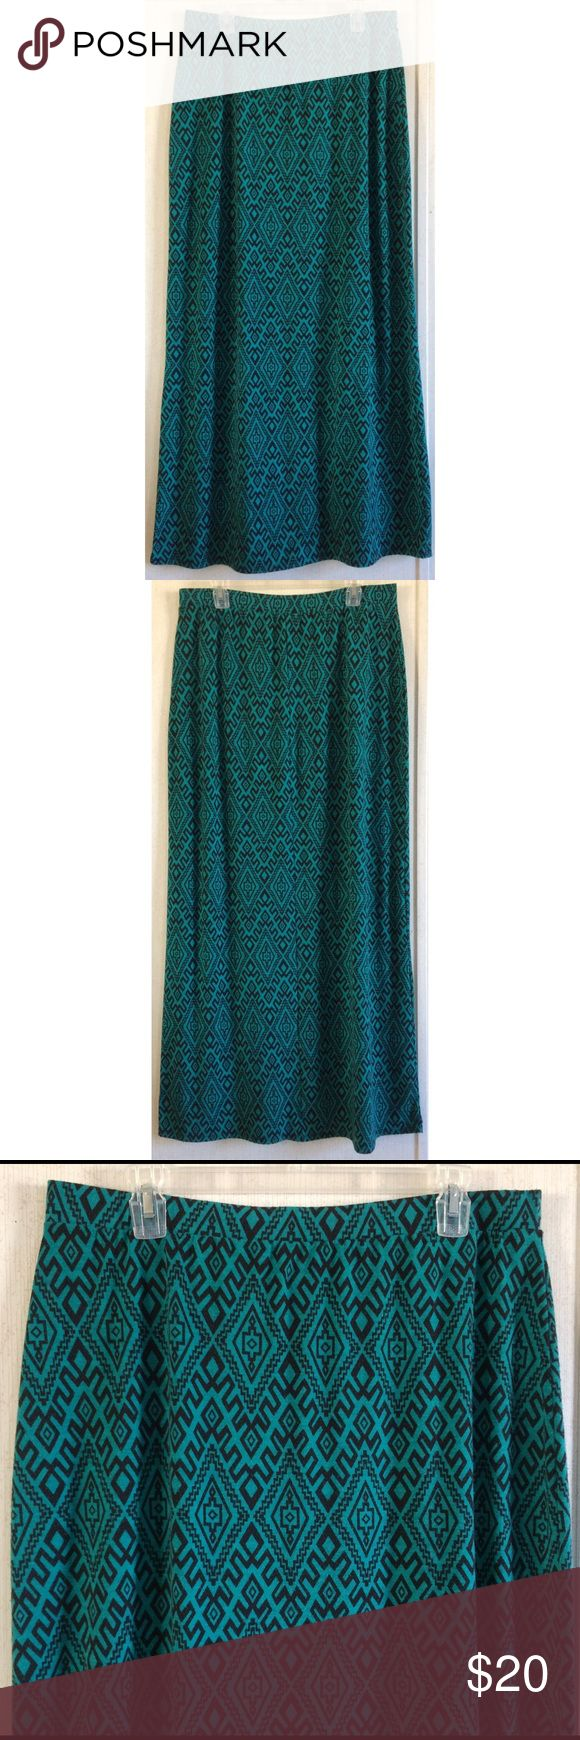 Mix & Co Turquoise Aztec Maxi Skirt Quite a bit of wash wear on the fabric. Really nice Mix & Co maxi skirt. Turquoise blue with a black tribal/aztec pattern. Soft stretchy material. Elastic band around the waist. Flares out a bit at the bottom. Size XL. May run large, waist 17 inches across. All offers welcome Mix & Co Skirts Maxi